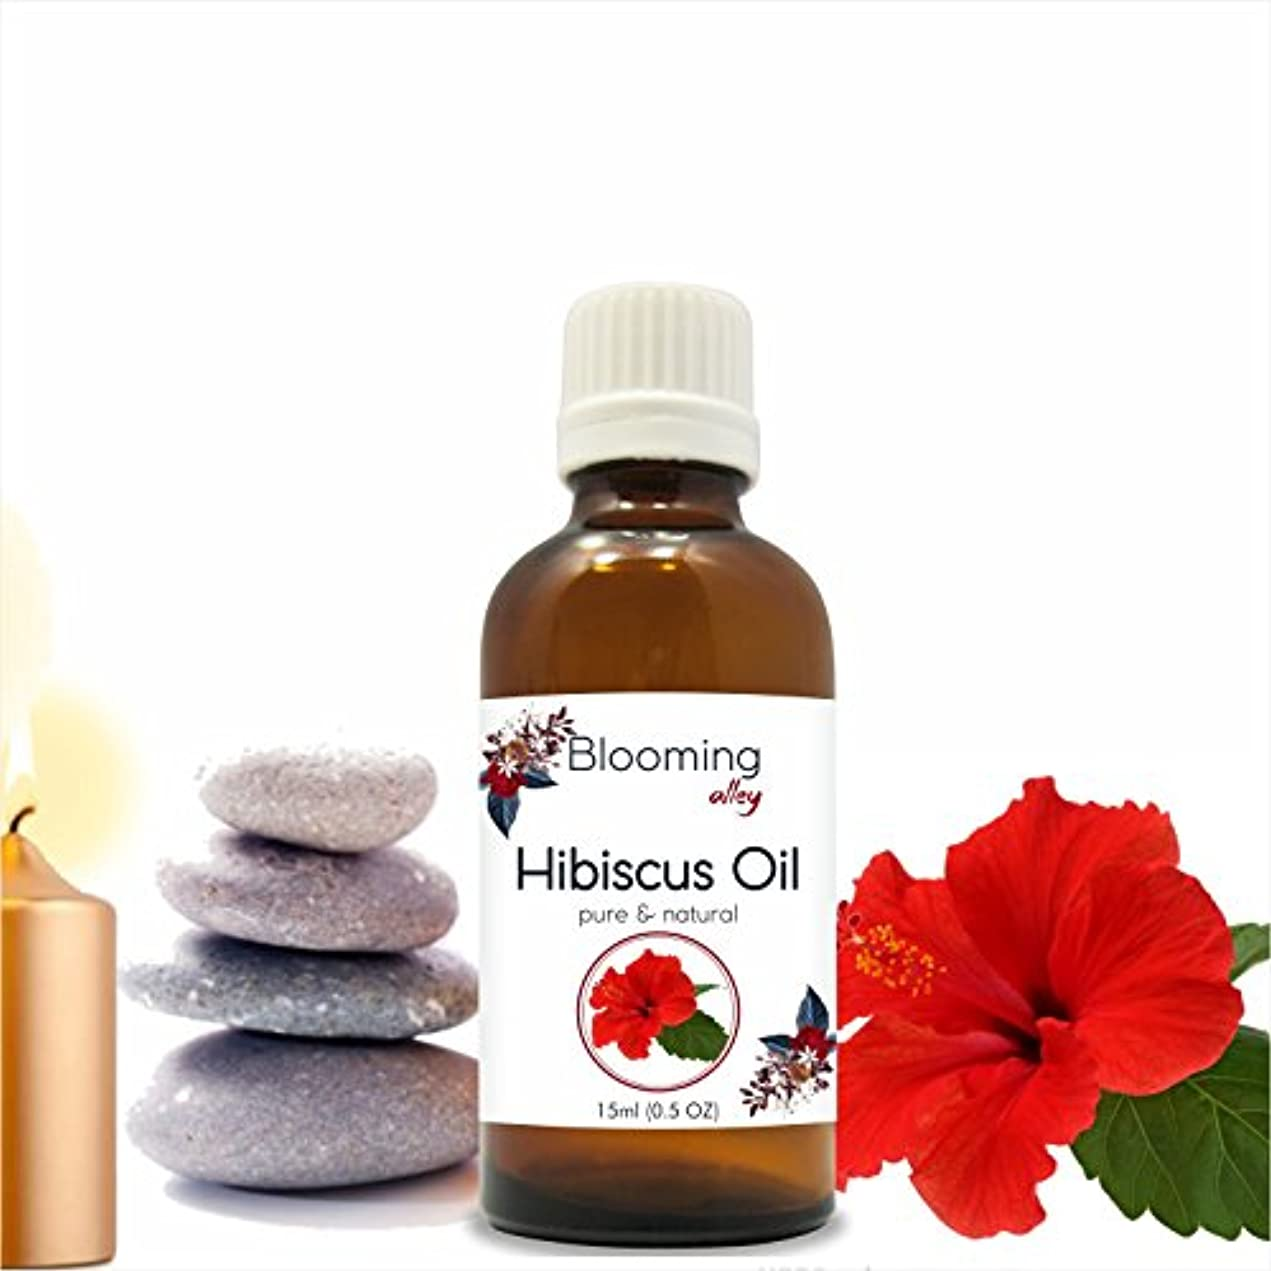 Hibiscus Oil (Hibiscus Sabdariffa L) Essential Oil 15 ml or .50 Fl Oz by Blooming Alley